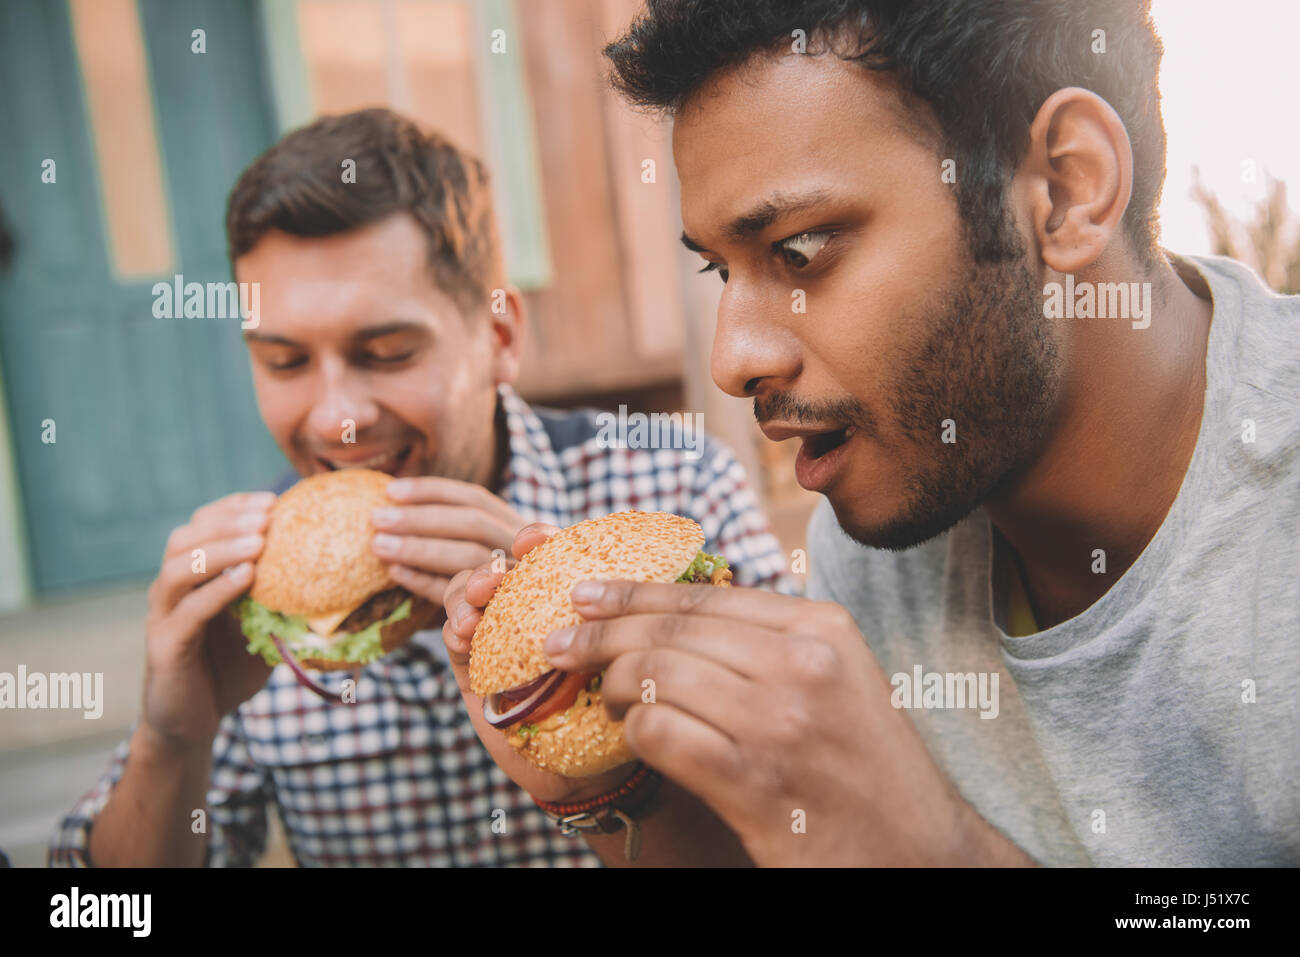 Close-up view of emotional young men eating gourmet hamburgers outdoors - Stock Image